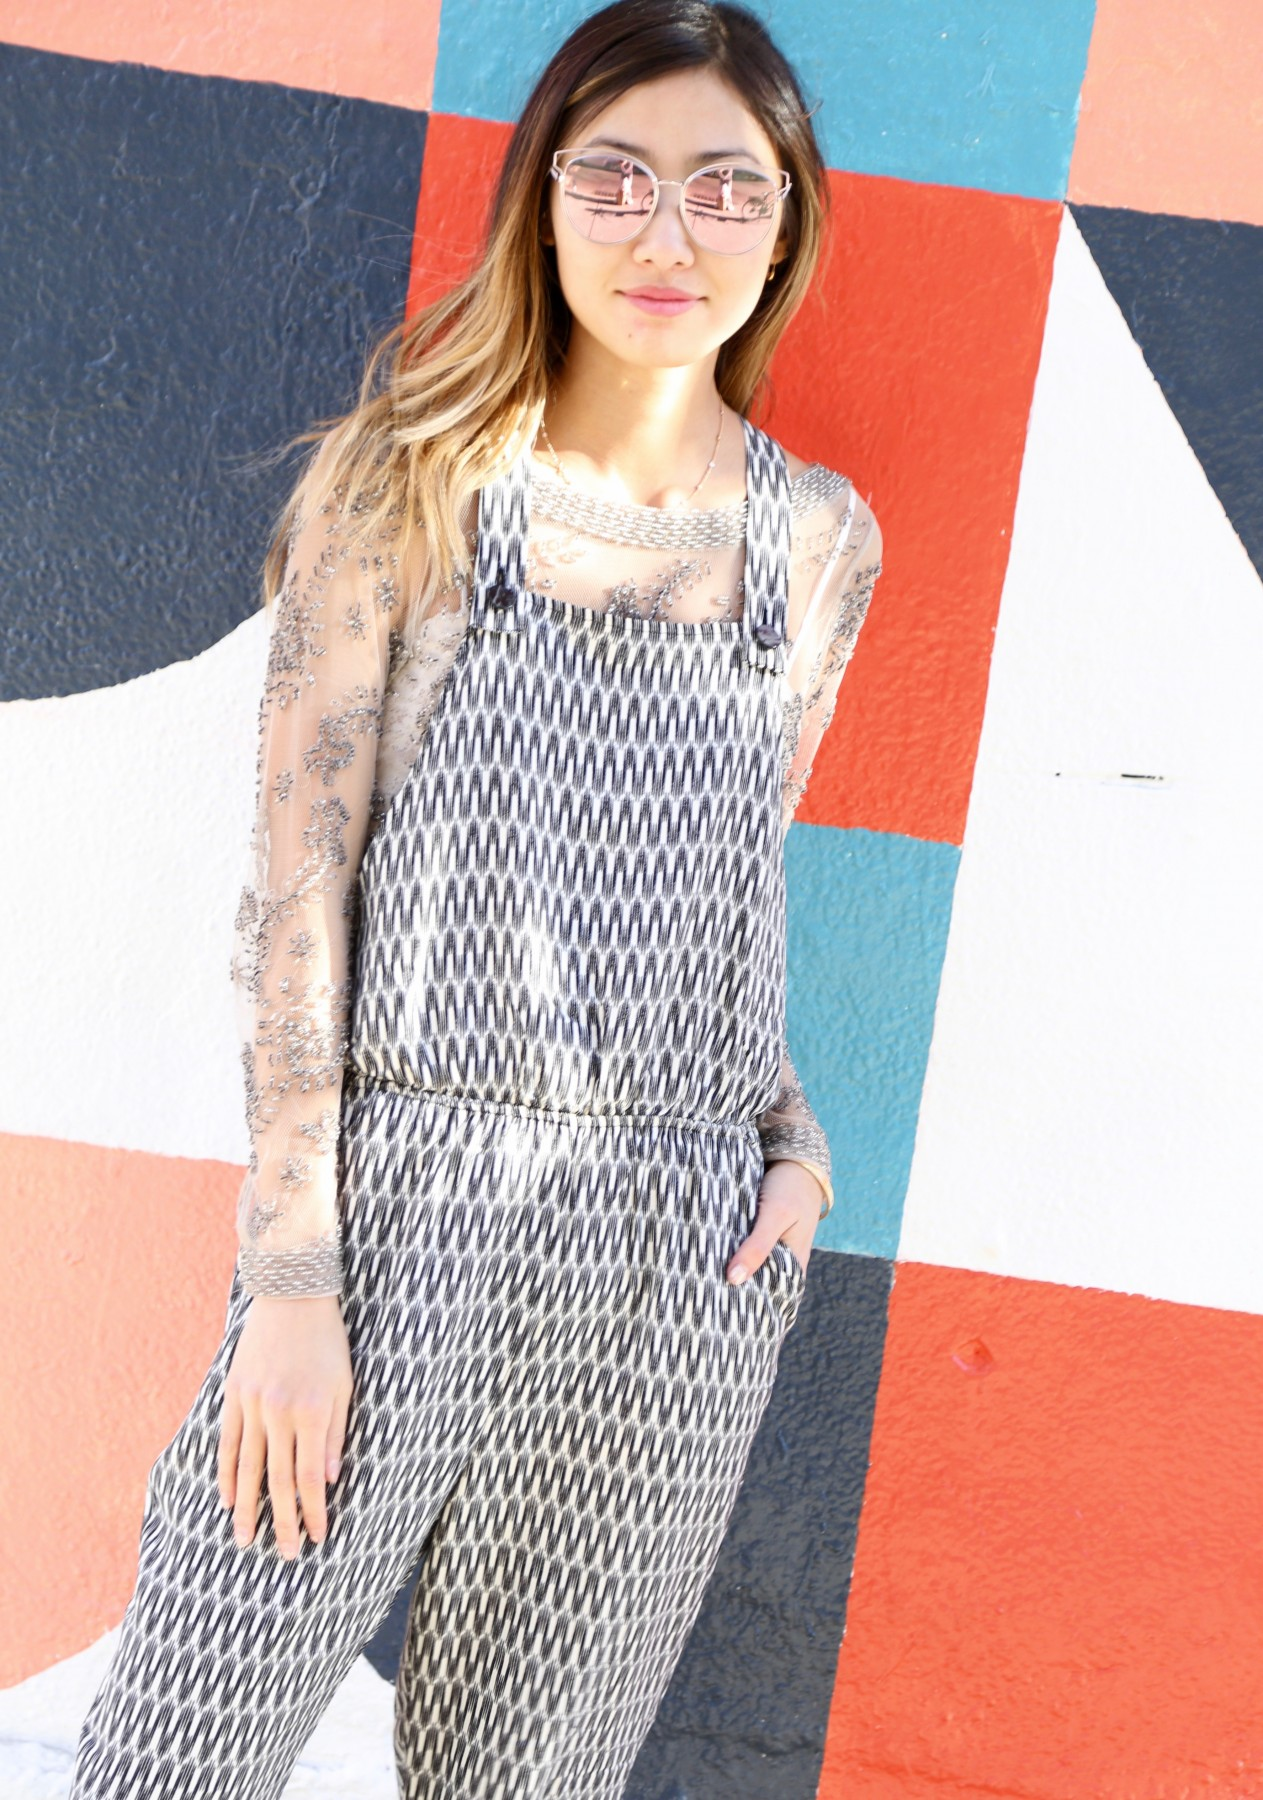 printed overalls4